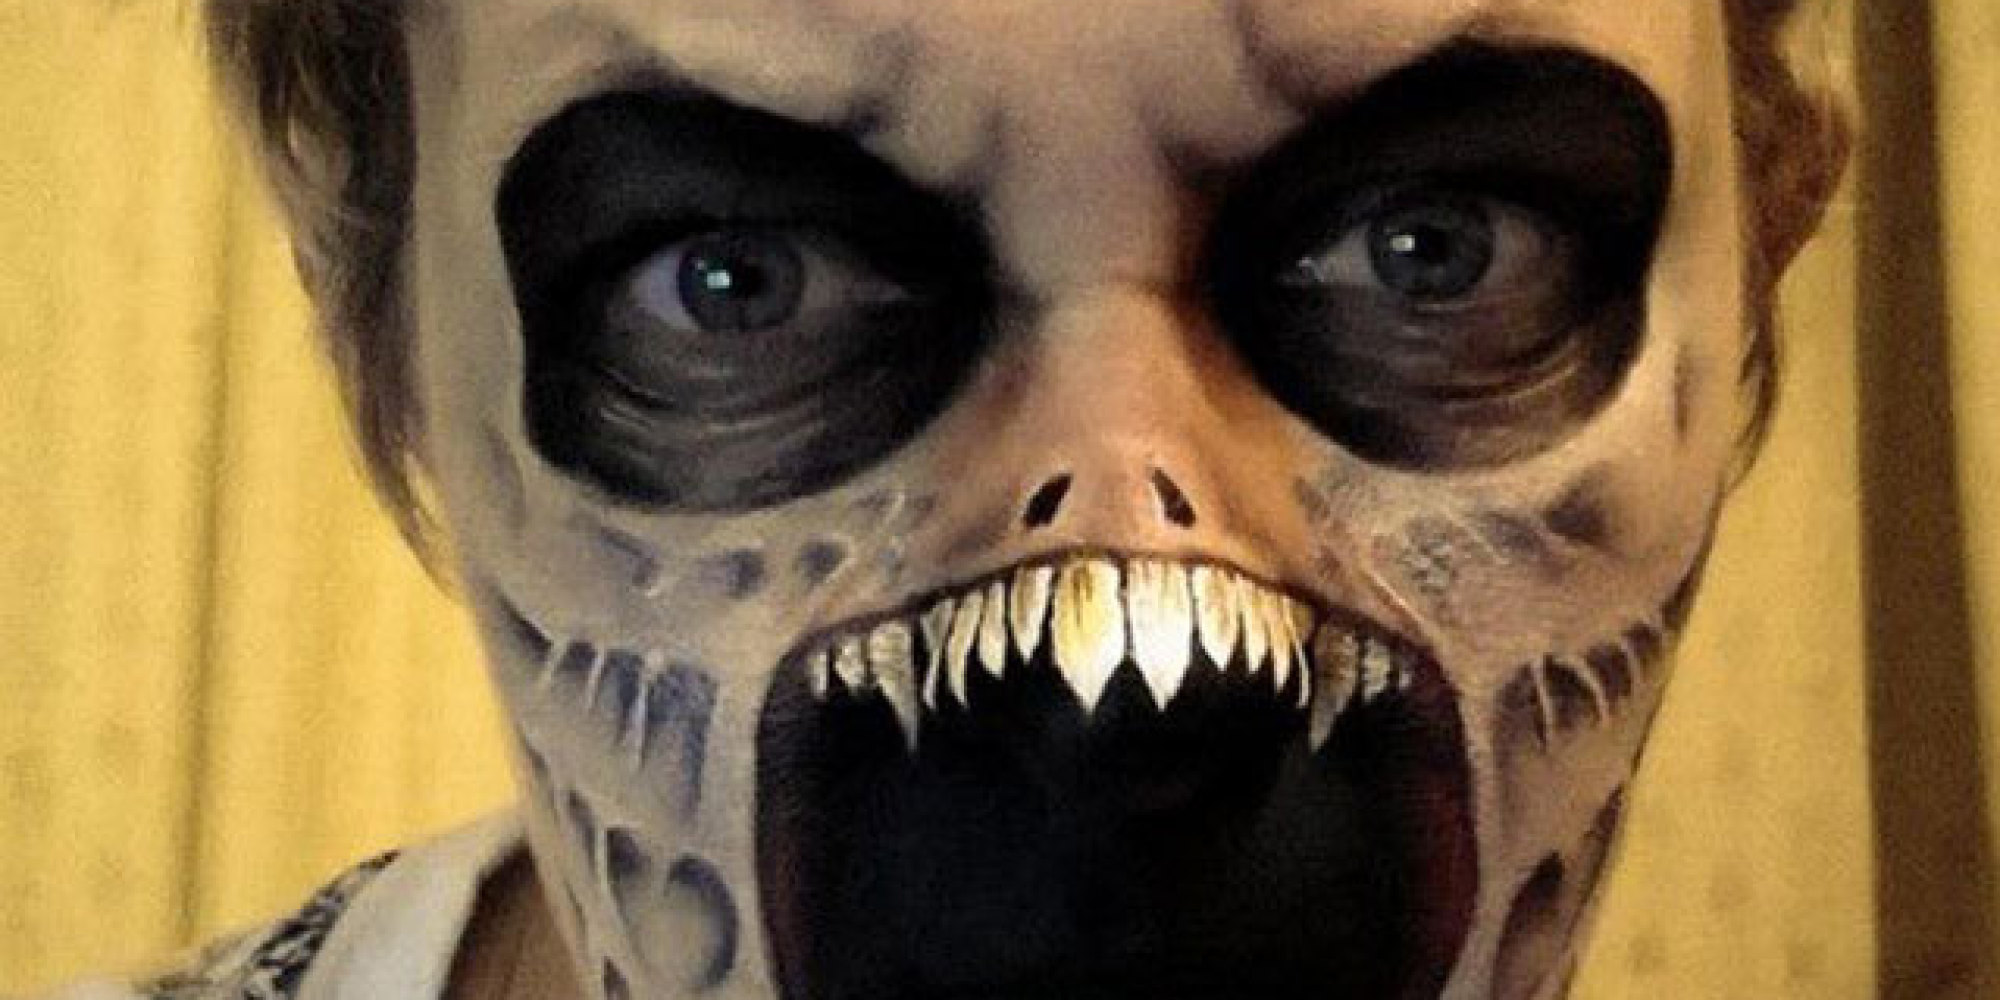 Mums Amazing Halloween Face Painting Tutorial Goes Viral